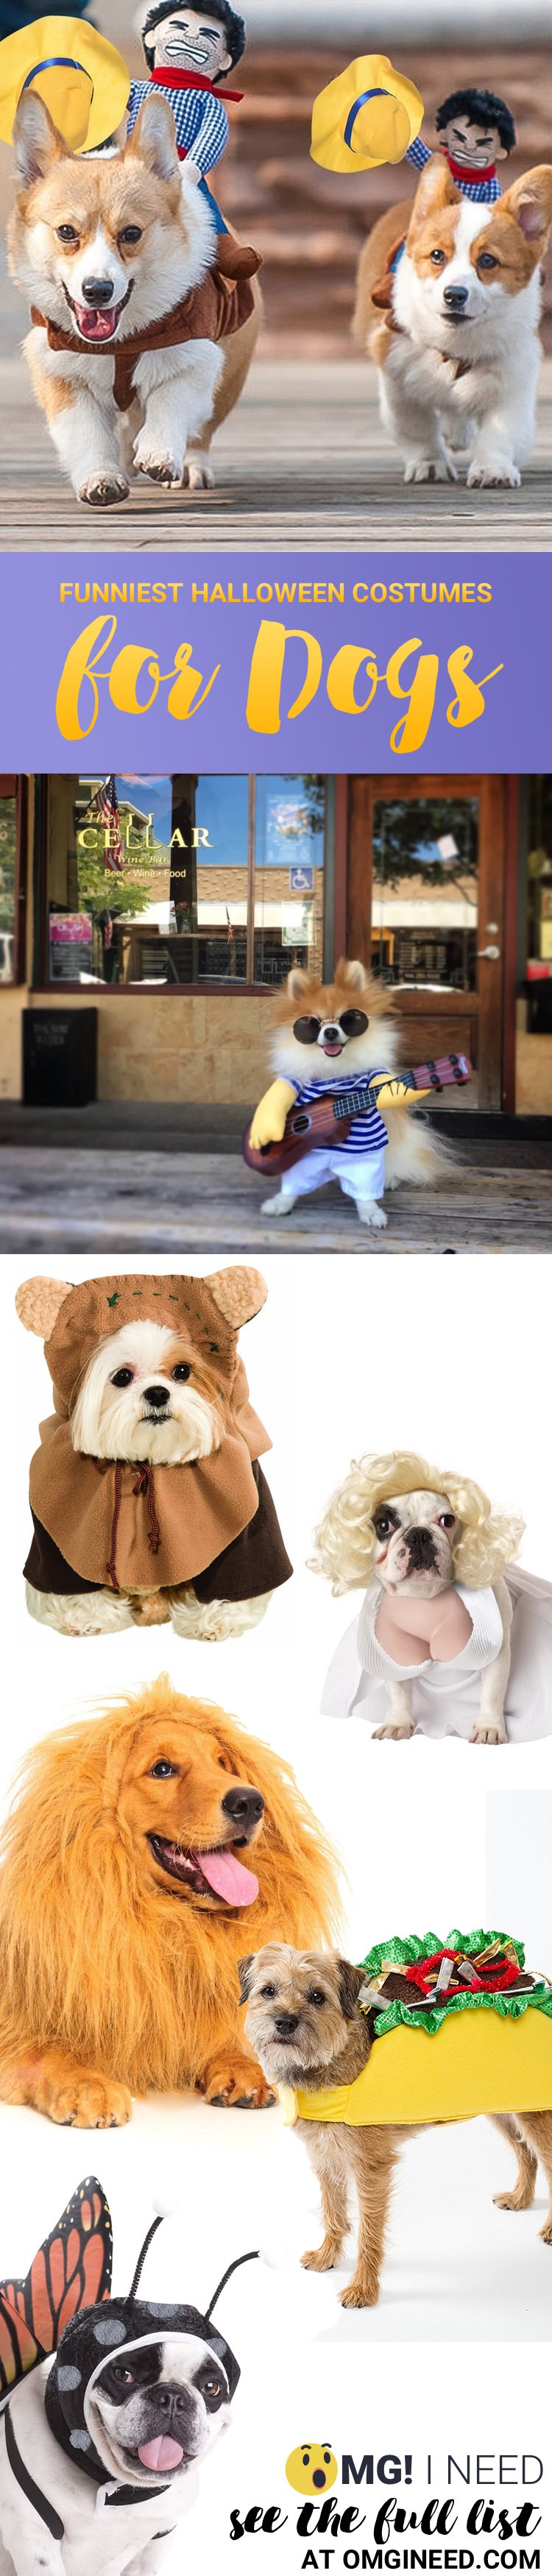 This list has 65+ of the most creative dog costumes out there! Great source for pet costume ideas. One of the best lists I've seen of Halloween costumes for dogs!